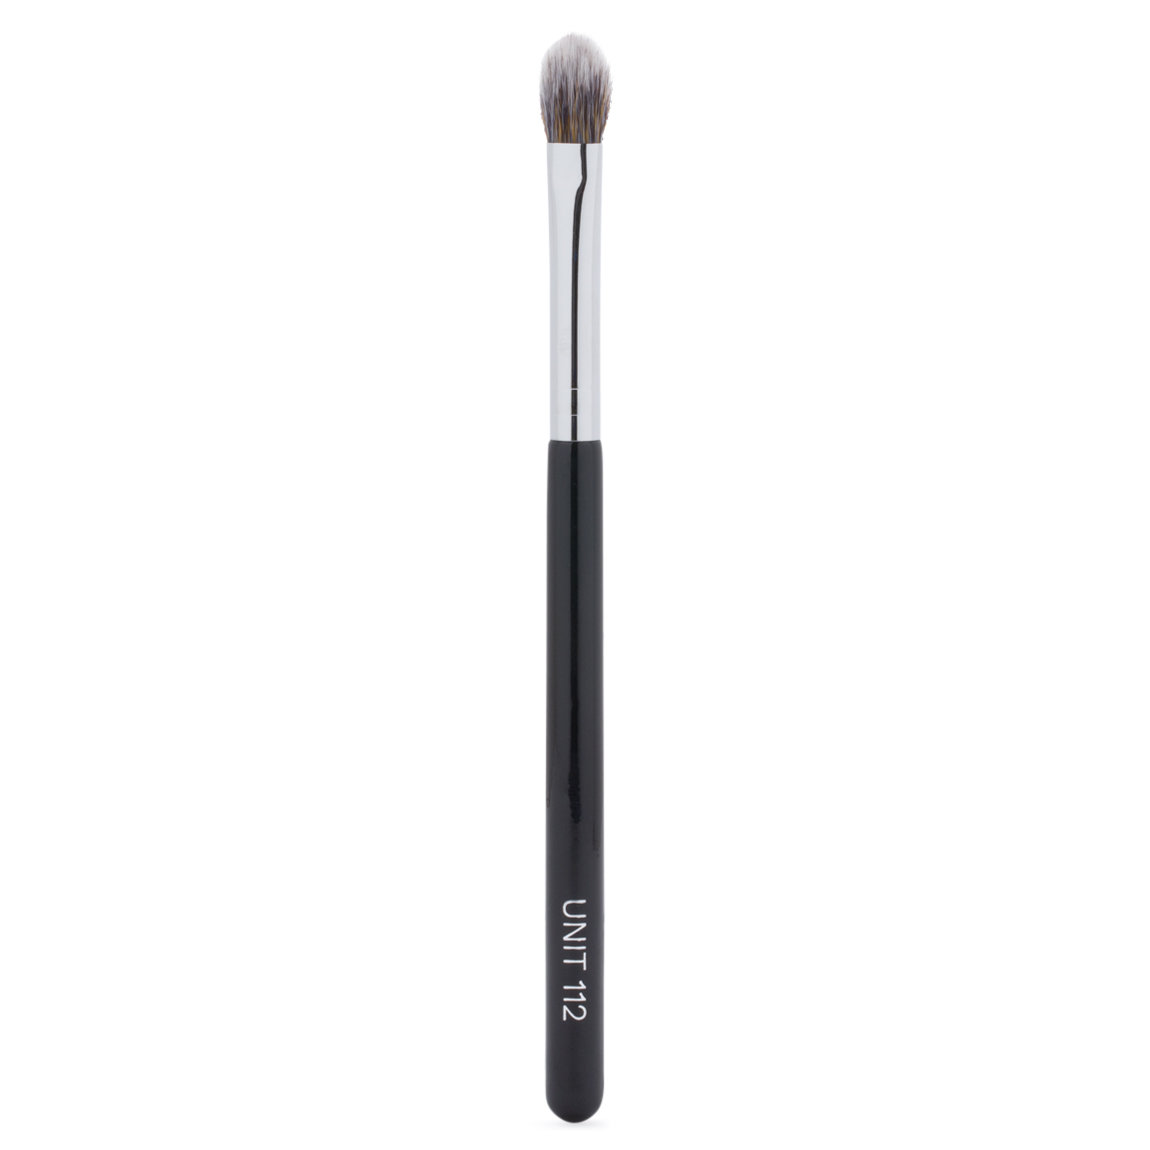 UNIT 112 Eye Brush